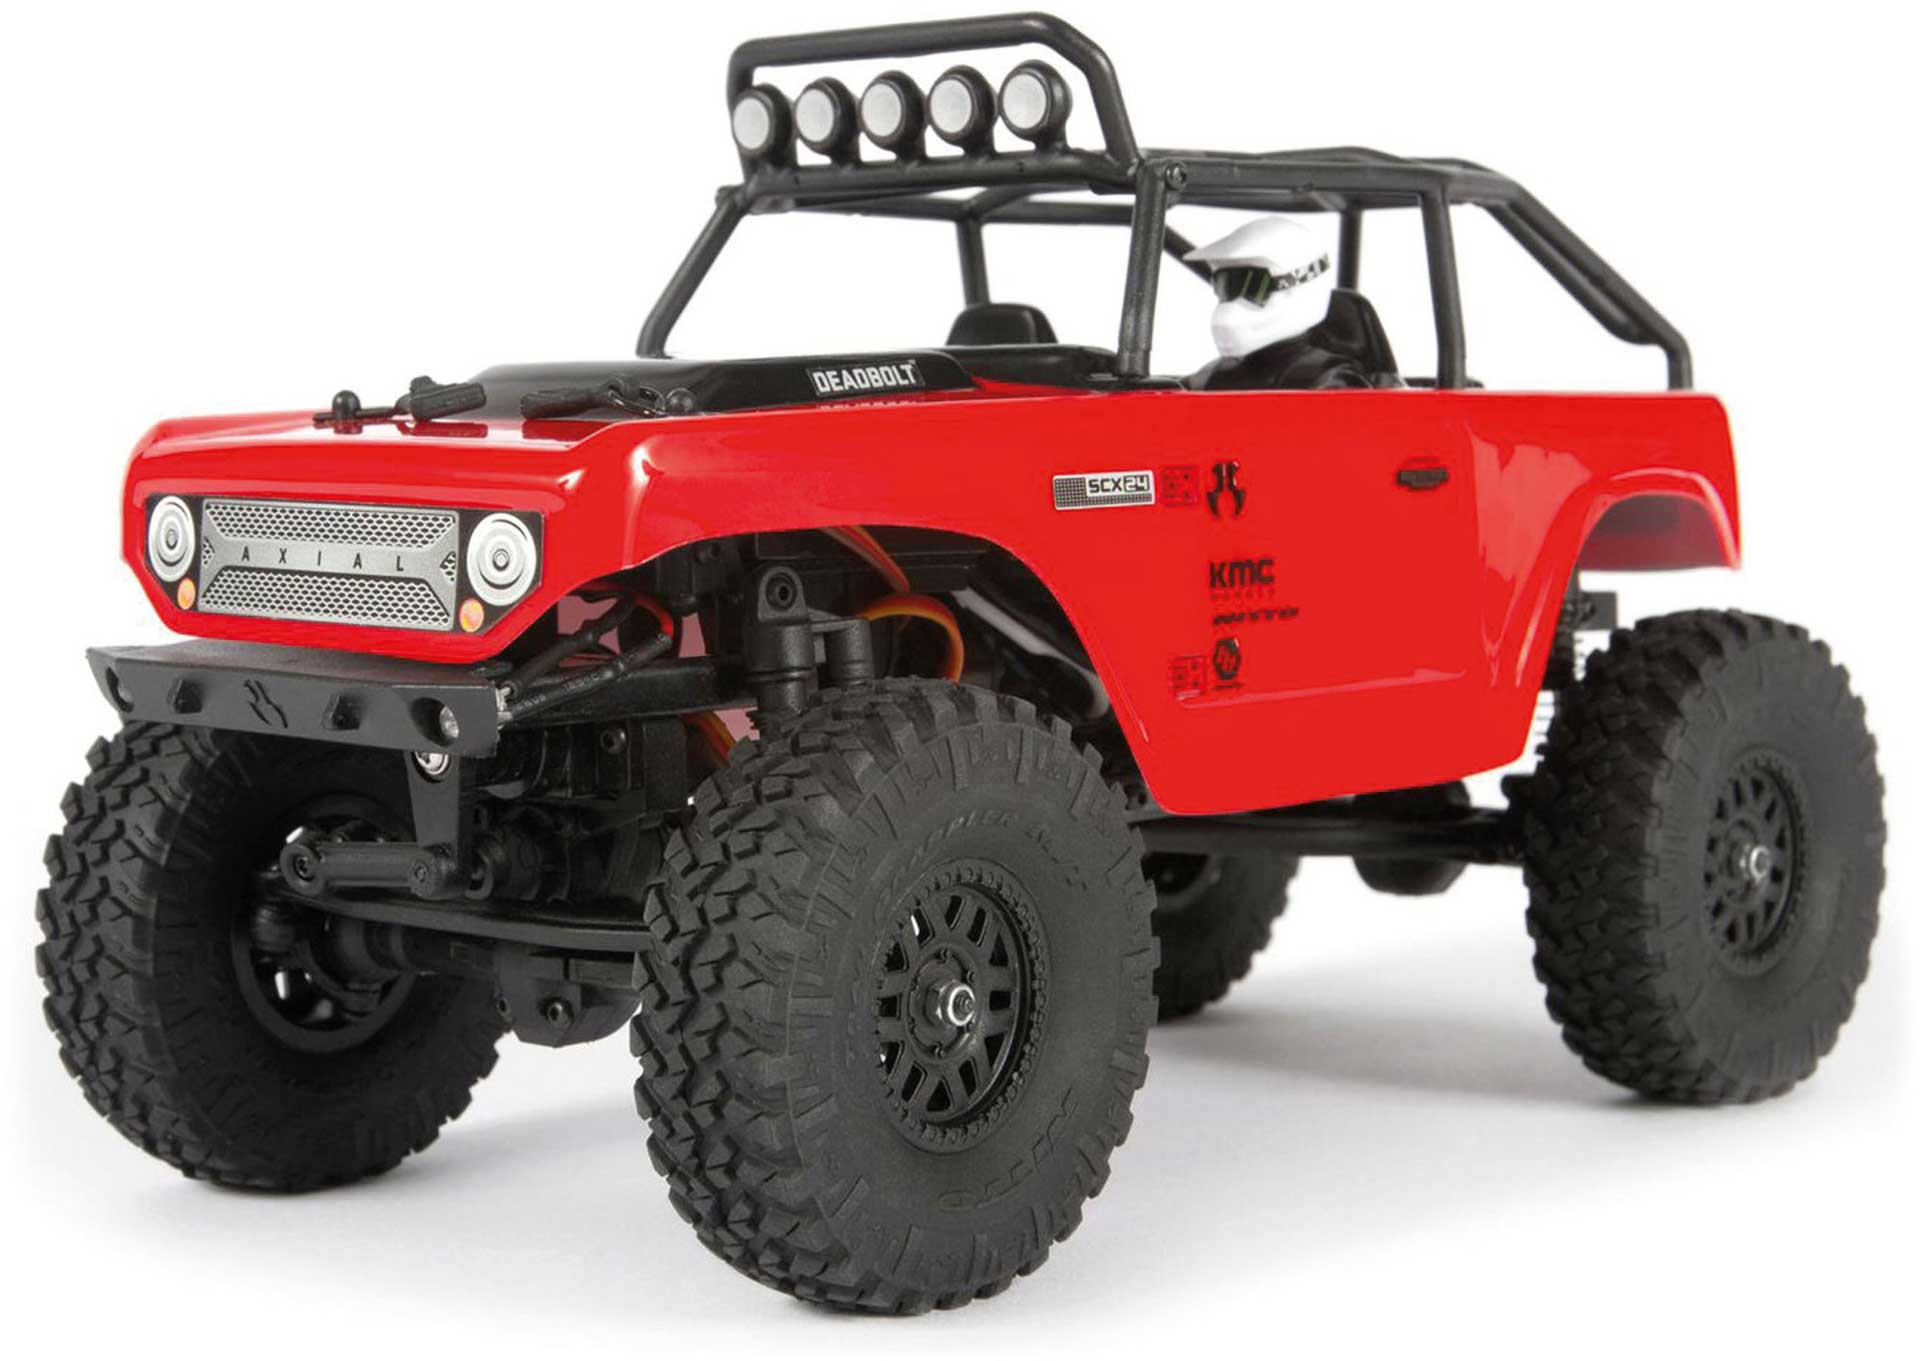 AXIAL SCX24 Deadbolt 1/24 Scale 4WD Red RTR